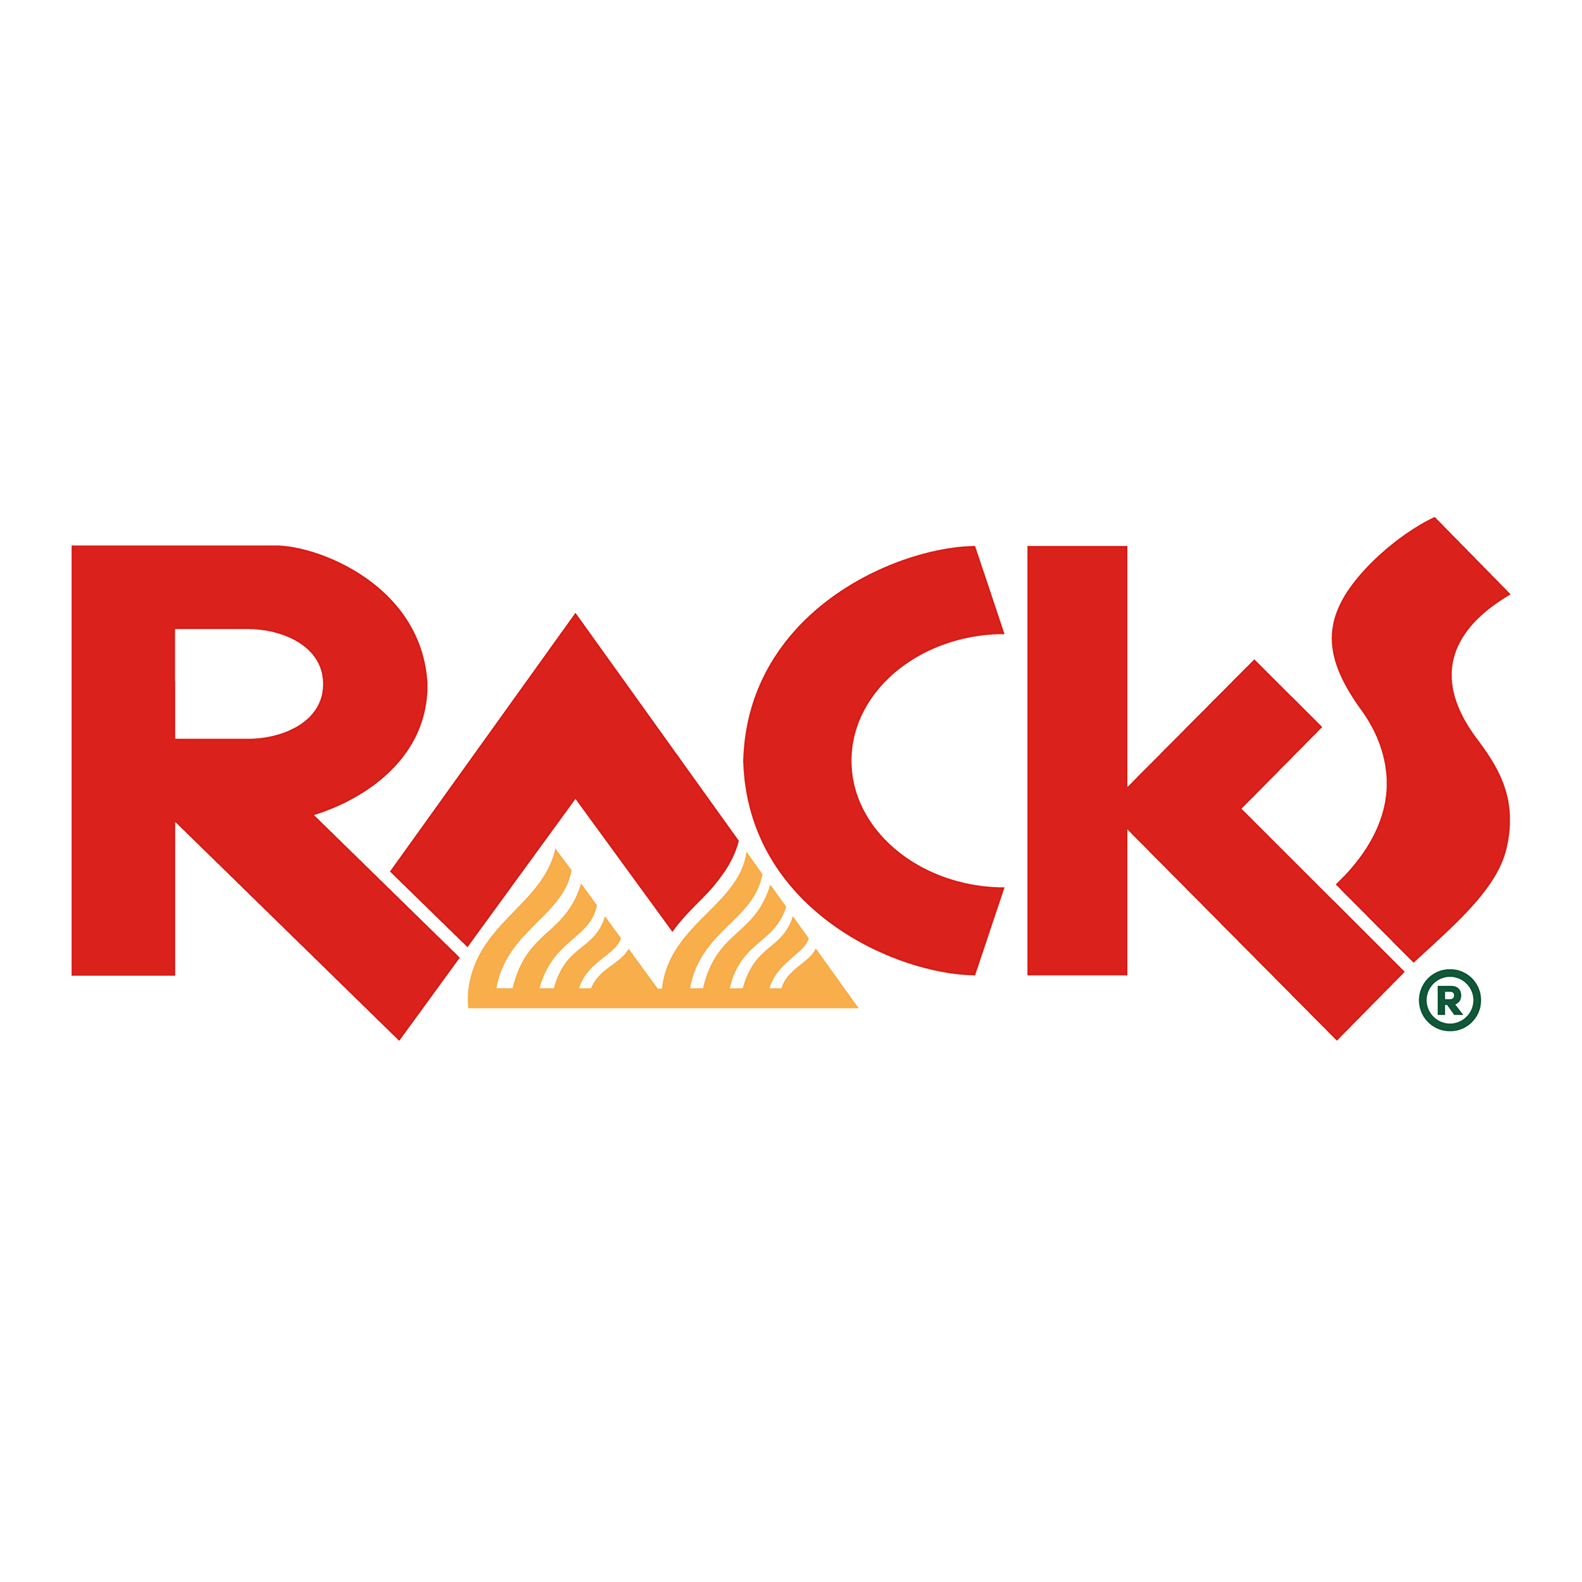 RACKS (SM Southmall, Paranaque) Las Pinas City